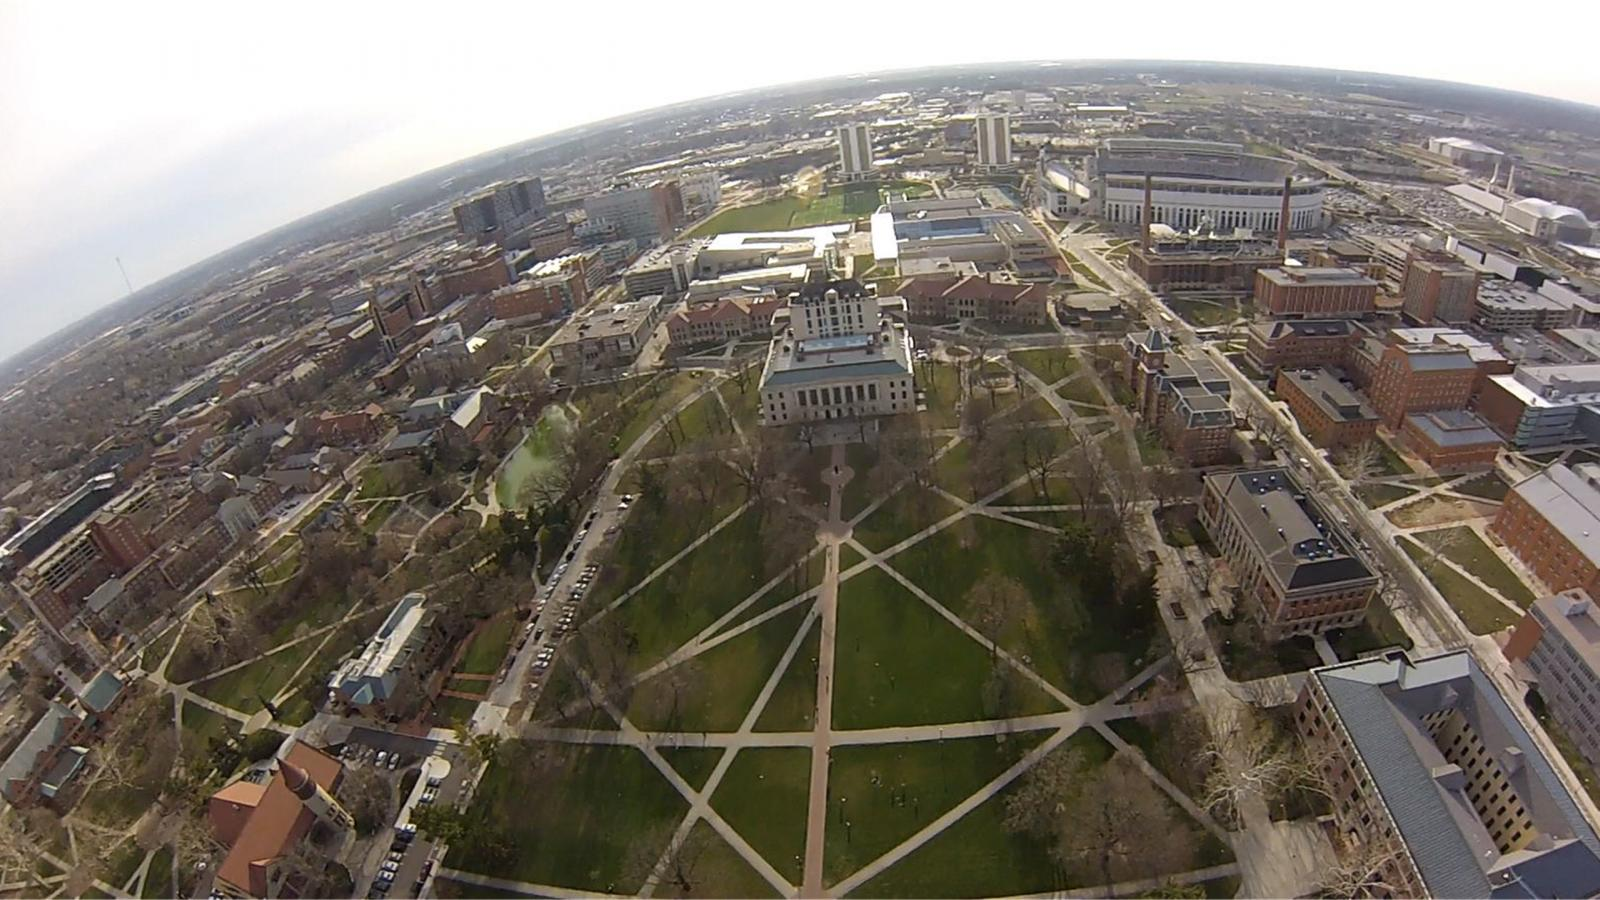 The Ohio State University Oval from above, with our Tethersonde.